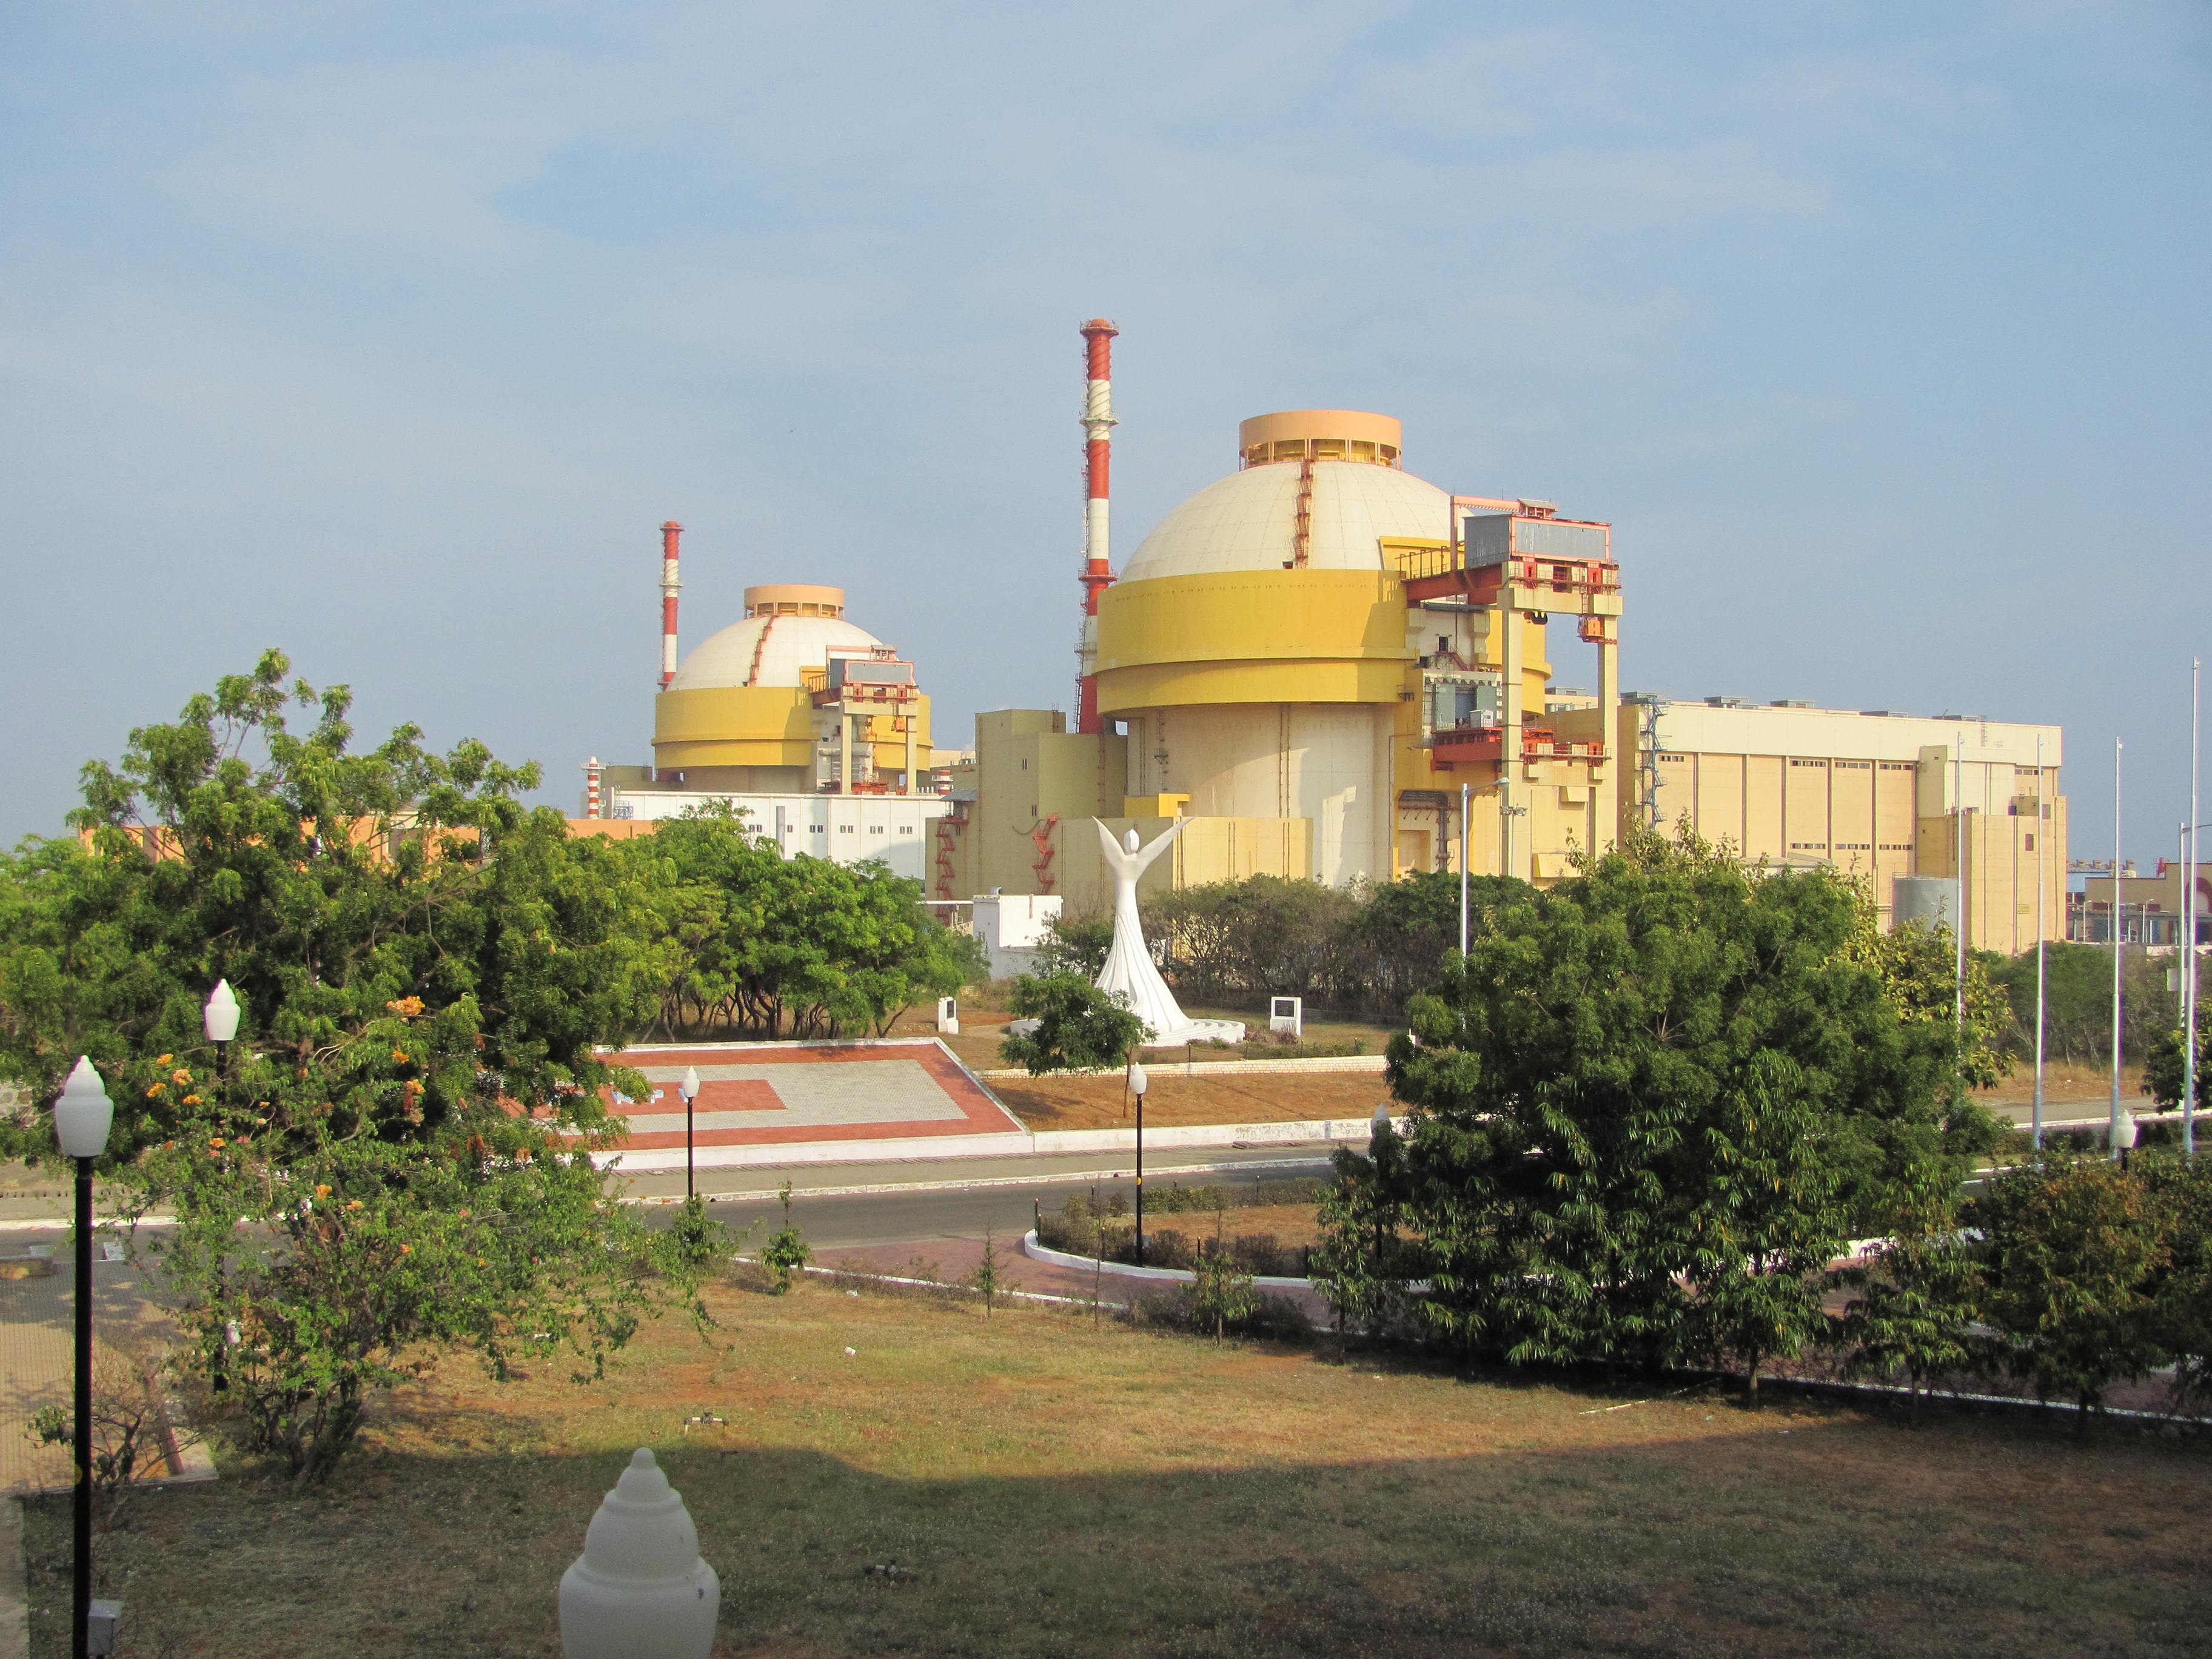 Two Kudankulam NPP power units connected to India's power grid